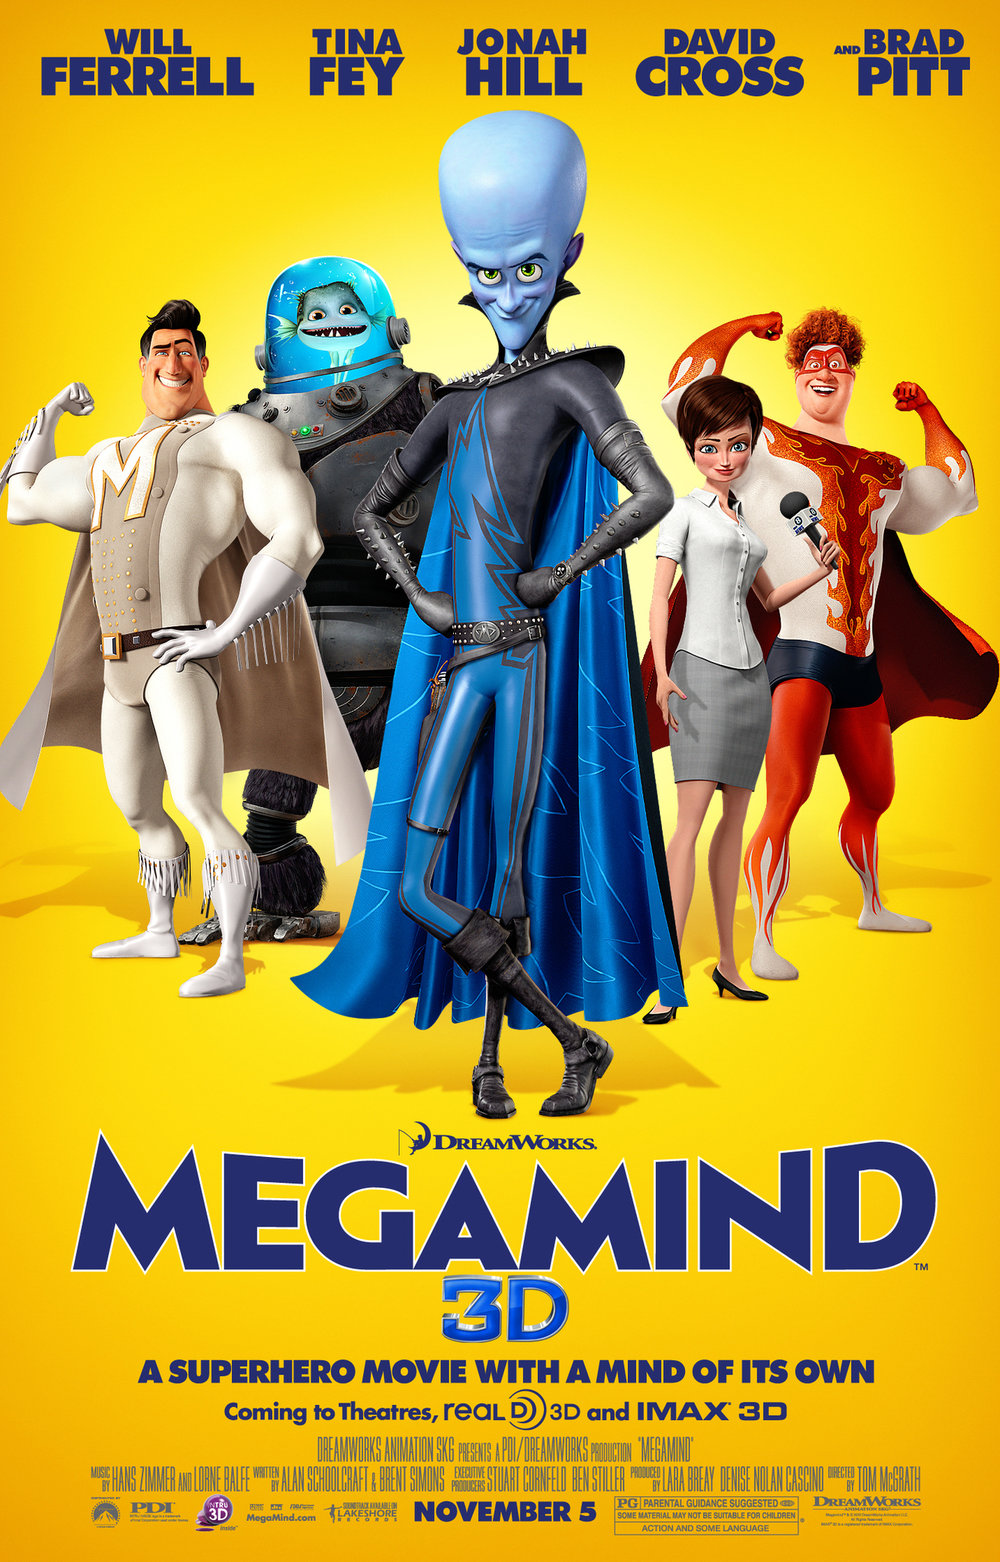 Megamind - Lighter @ PDI/Dreamworks Animation